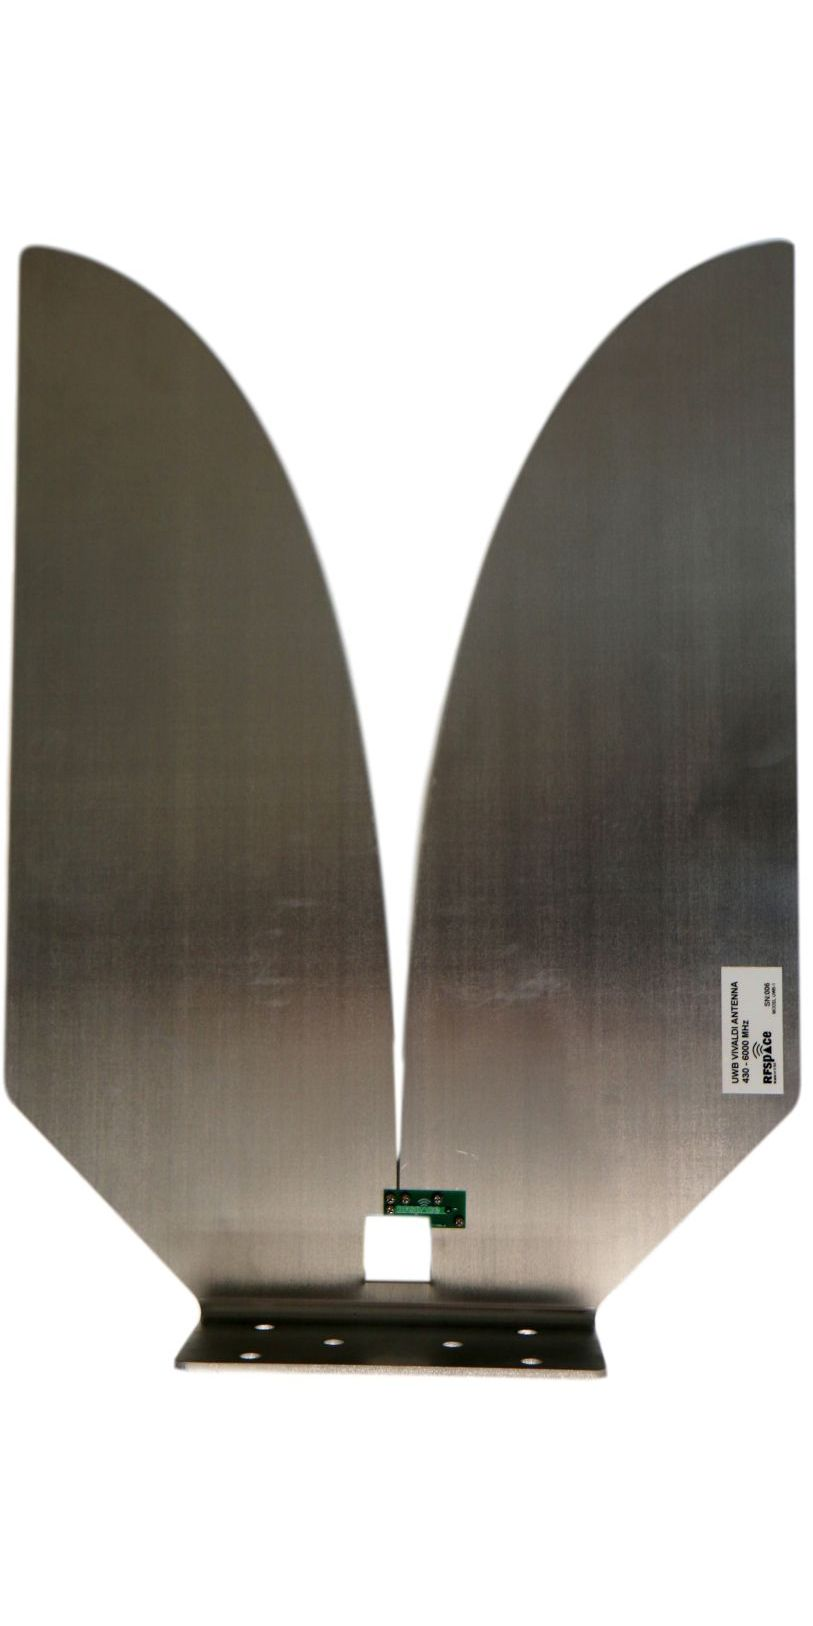 Aluminum Planar Vivaldi Horn Antenna measured far field in anechoic chamber gain results in dBi